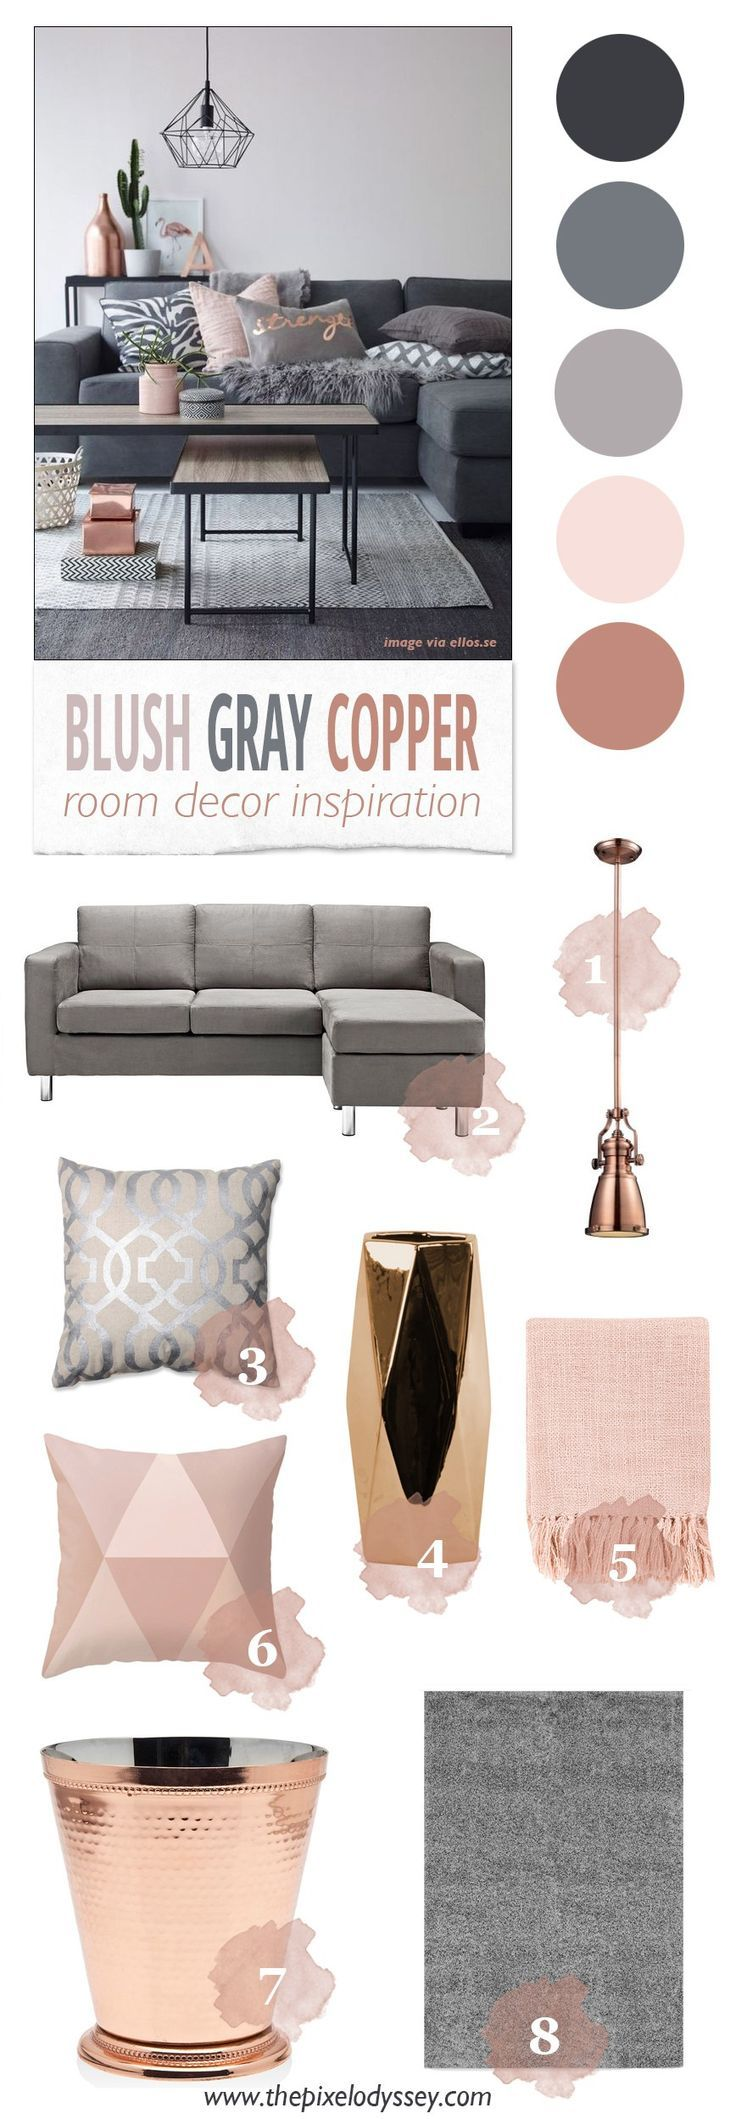 Blush Gray Copper Room Decor Inspiration - The Pixel Odyssey // visit our sister sites.